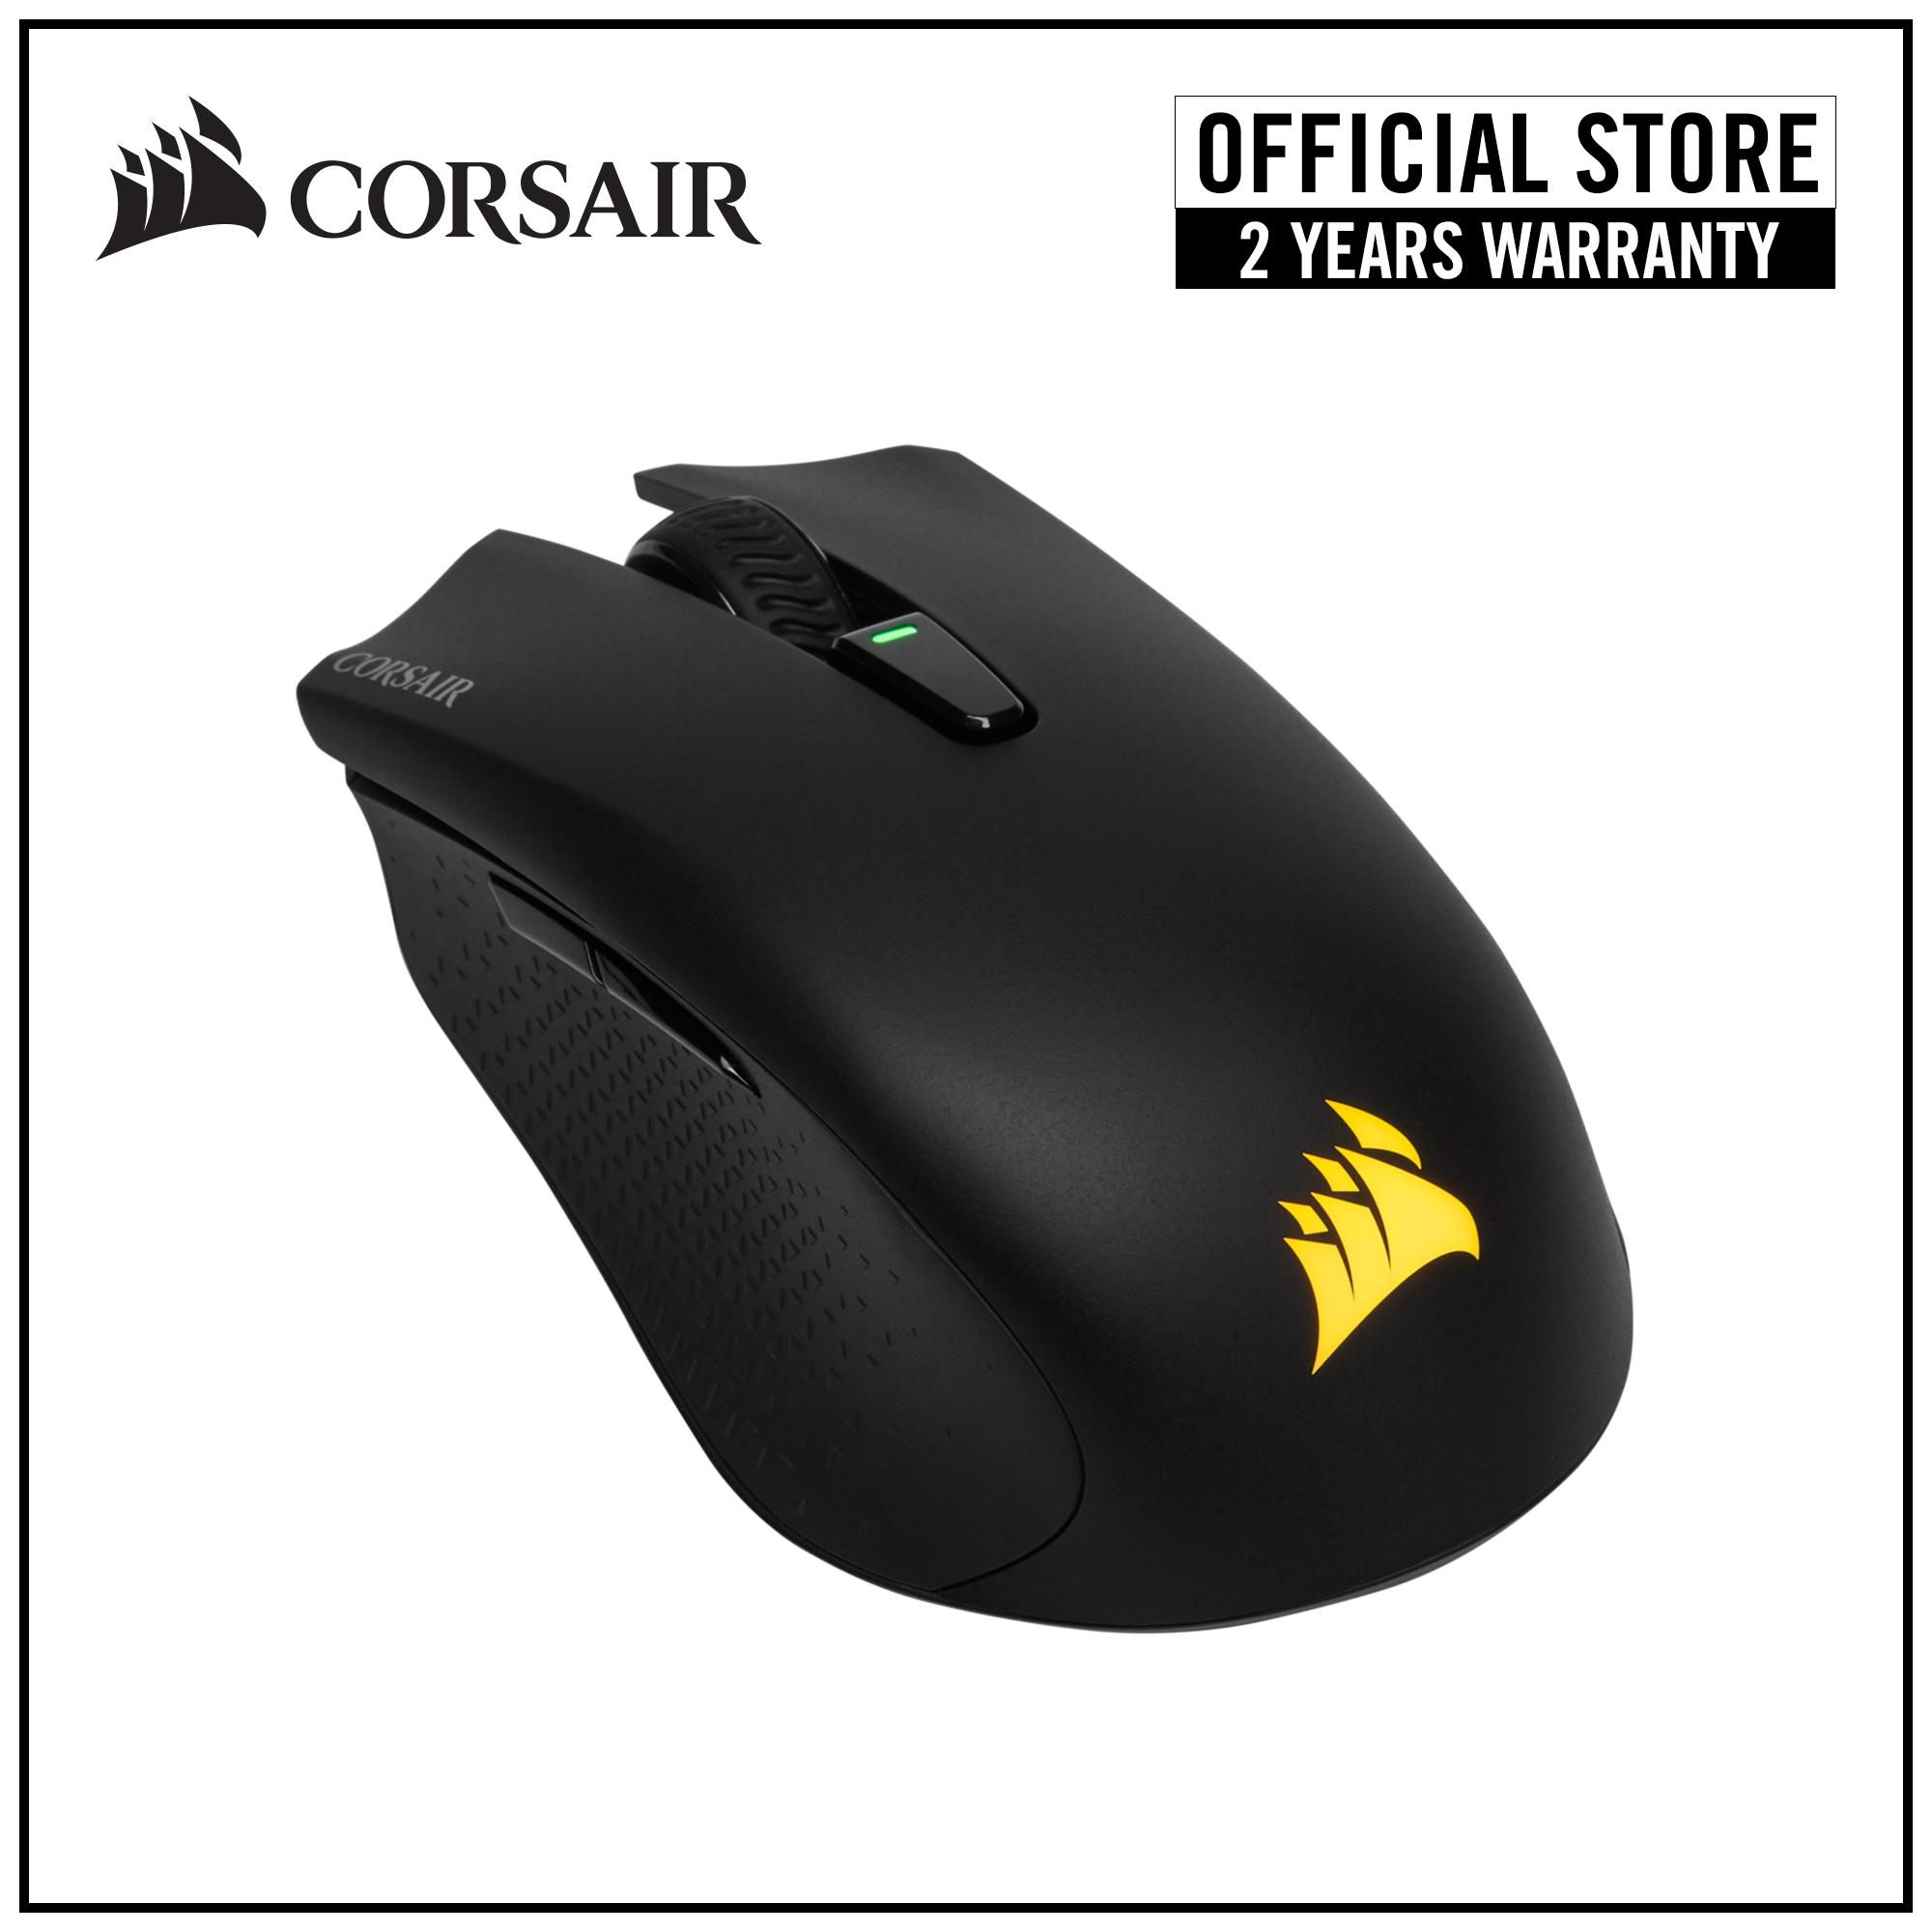 1877e17b61c Corsair HARPOON RGB Wireless Rechargeable Gaming Mouse with SLIPSTREAM  Technology Singapore